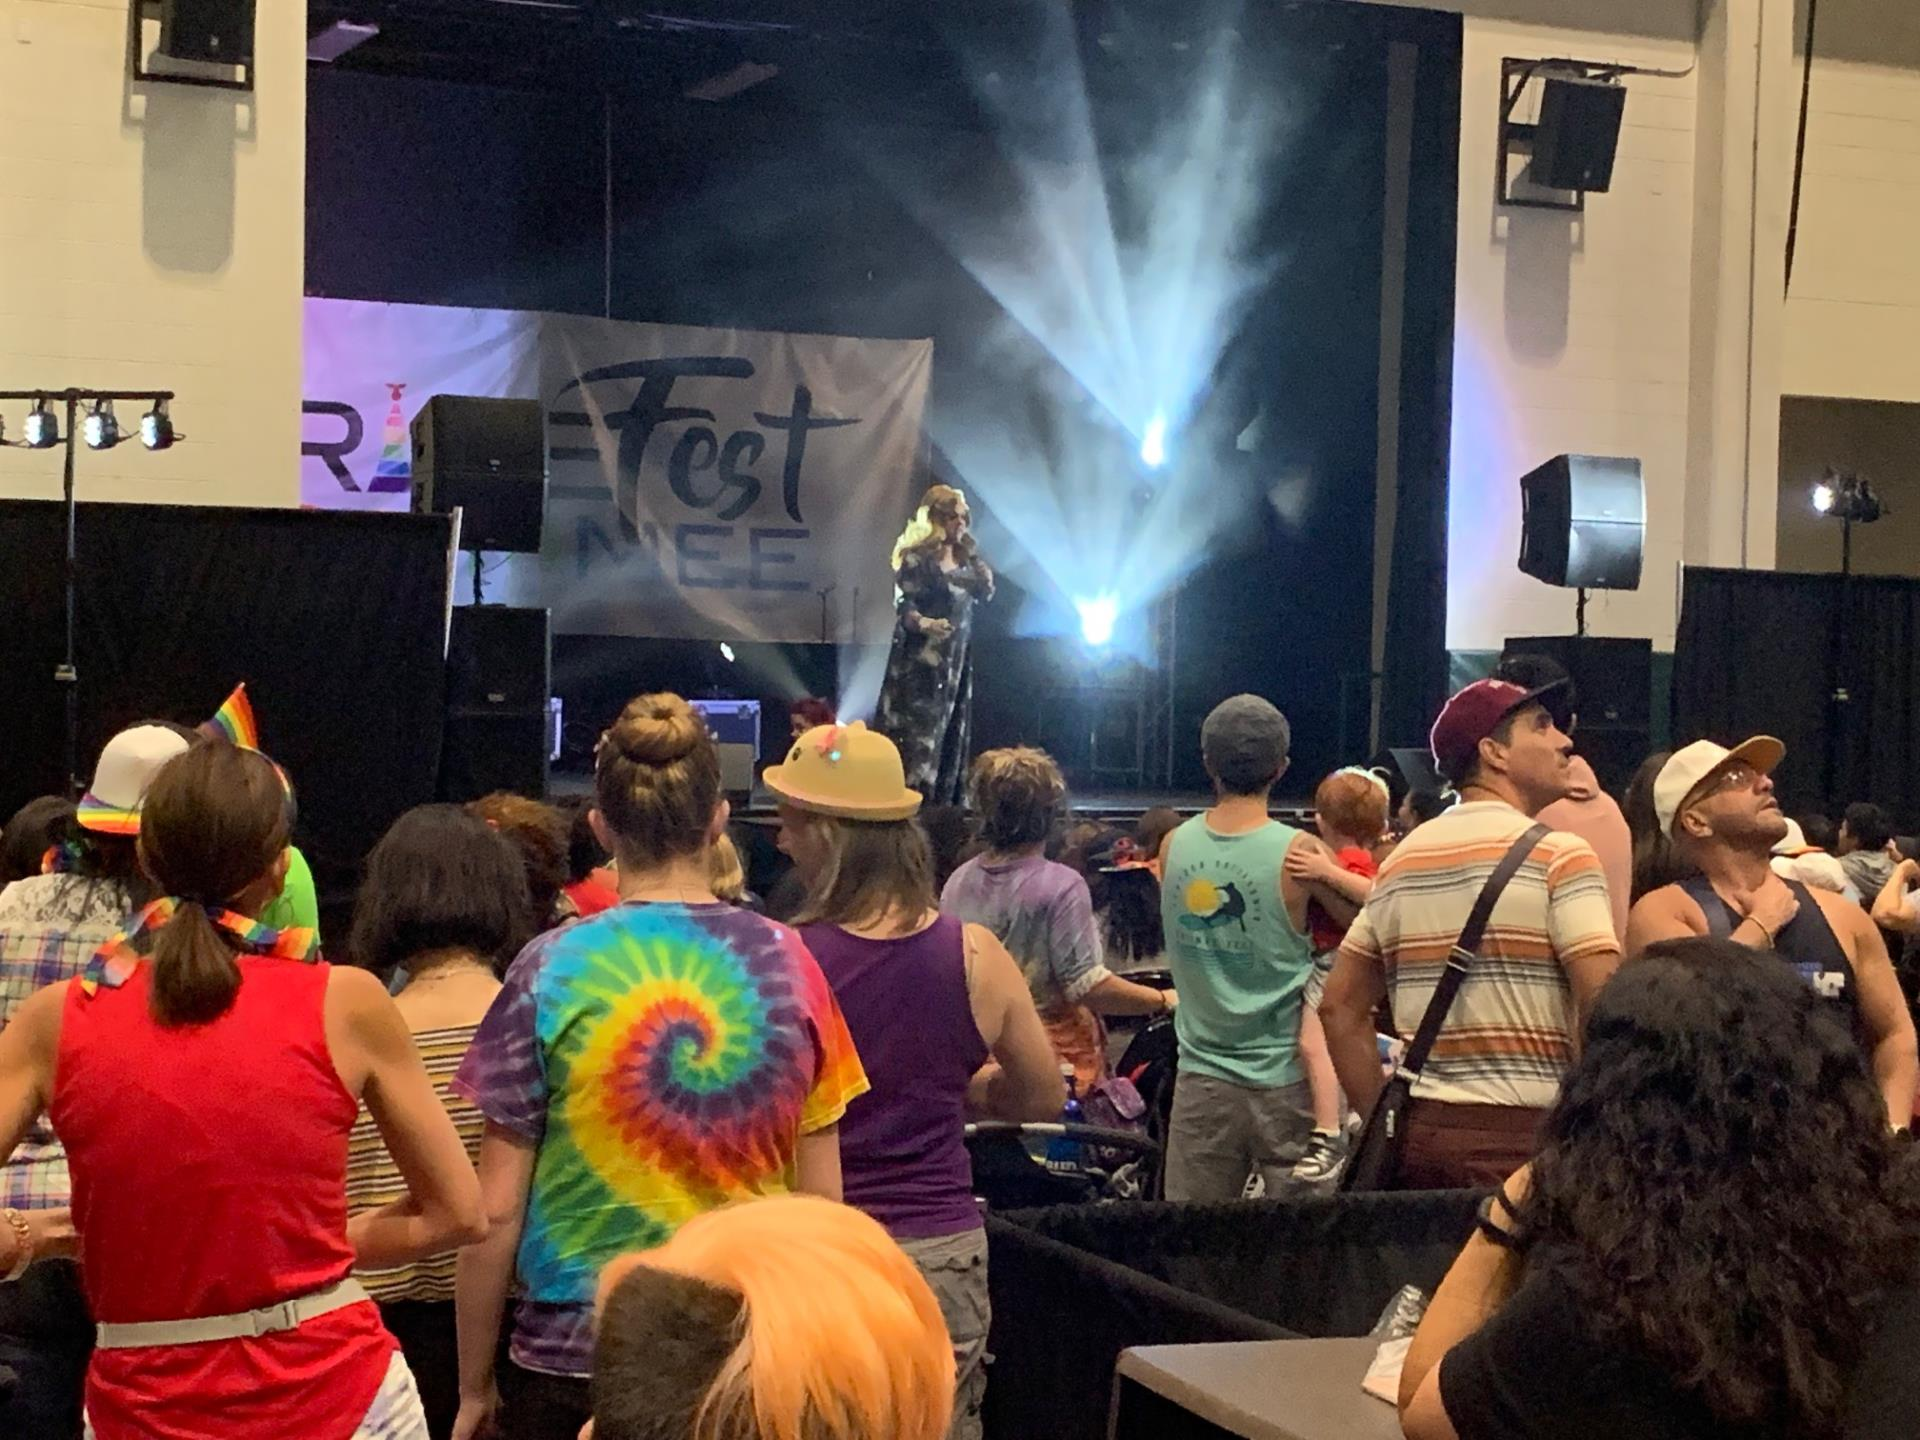 This is a photo of a live performer on stage at Pridefest Kissimmee at the Kissimmee Civic Center